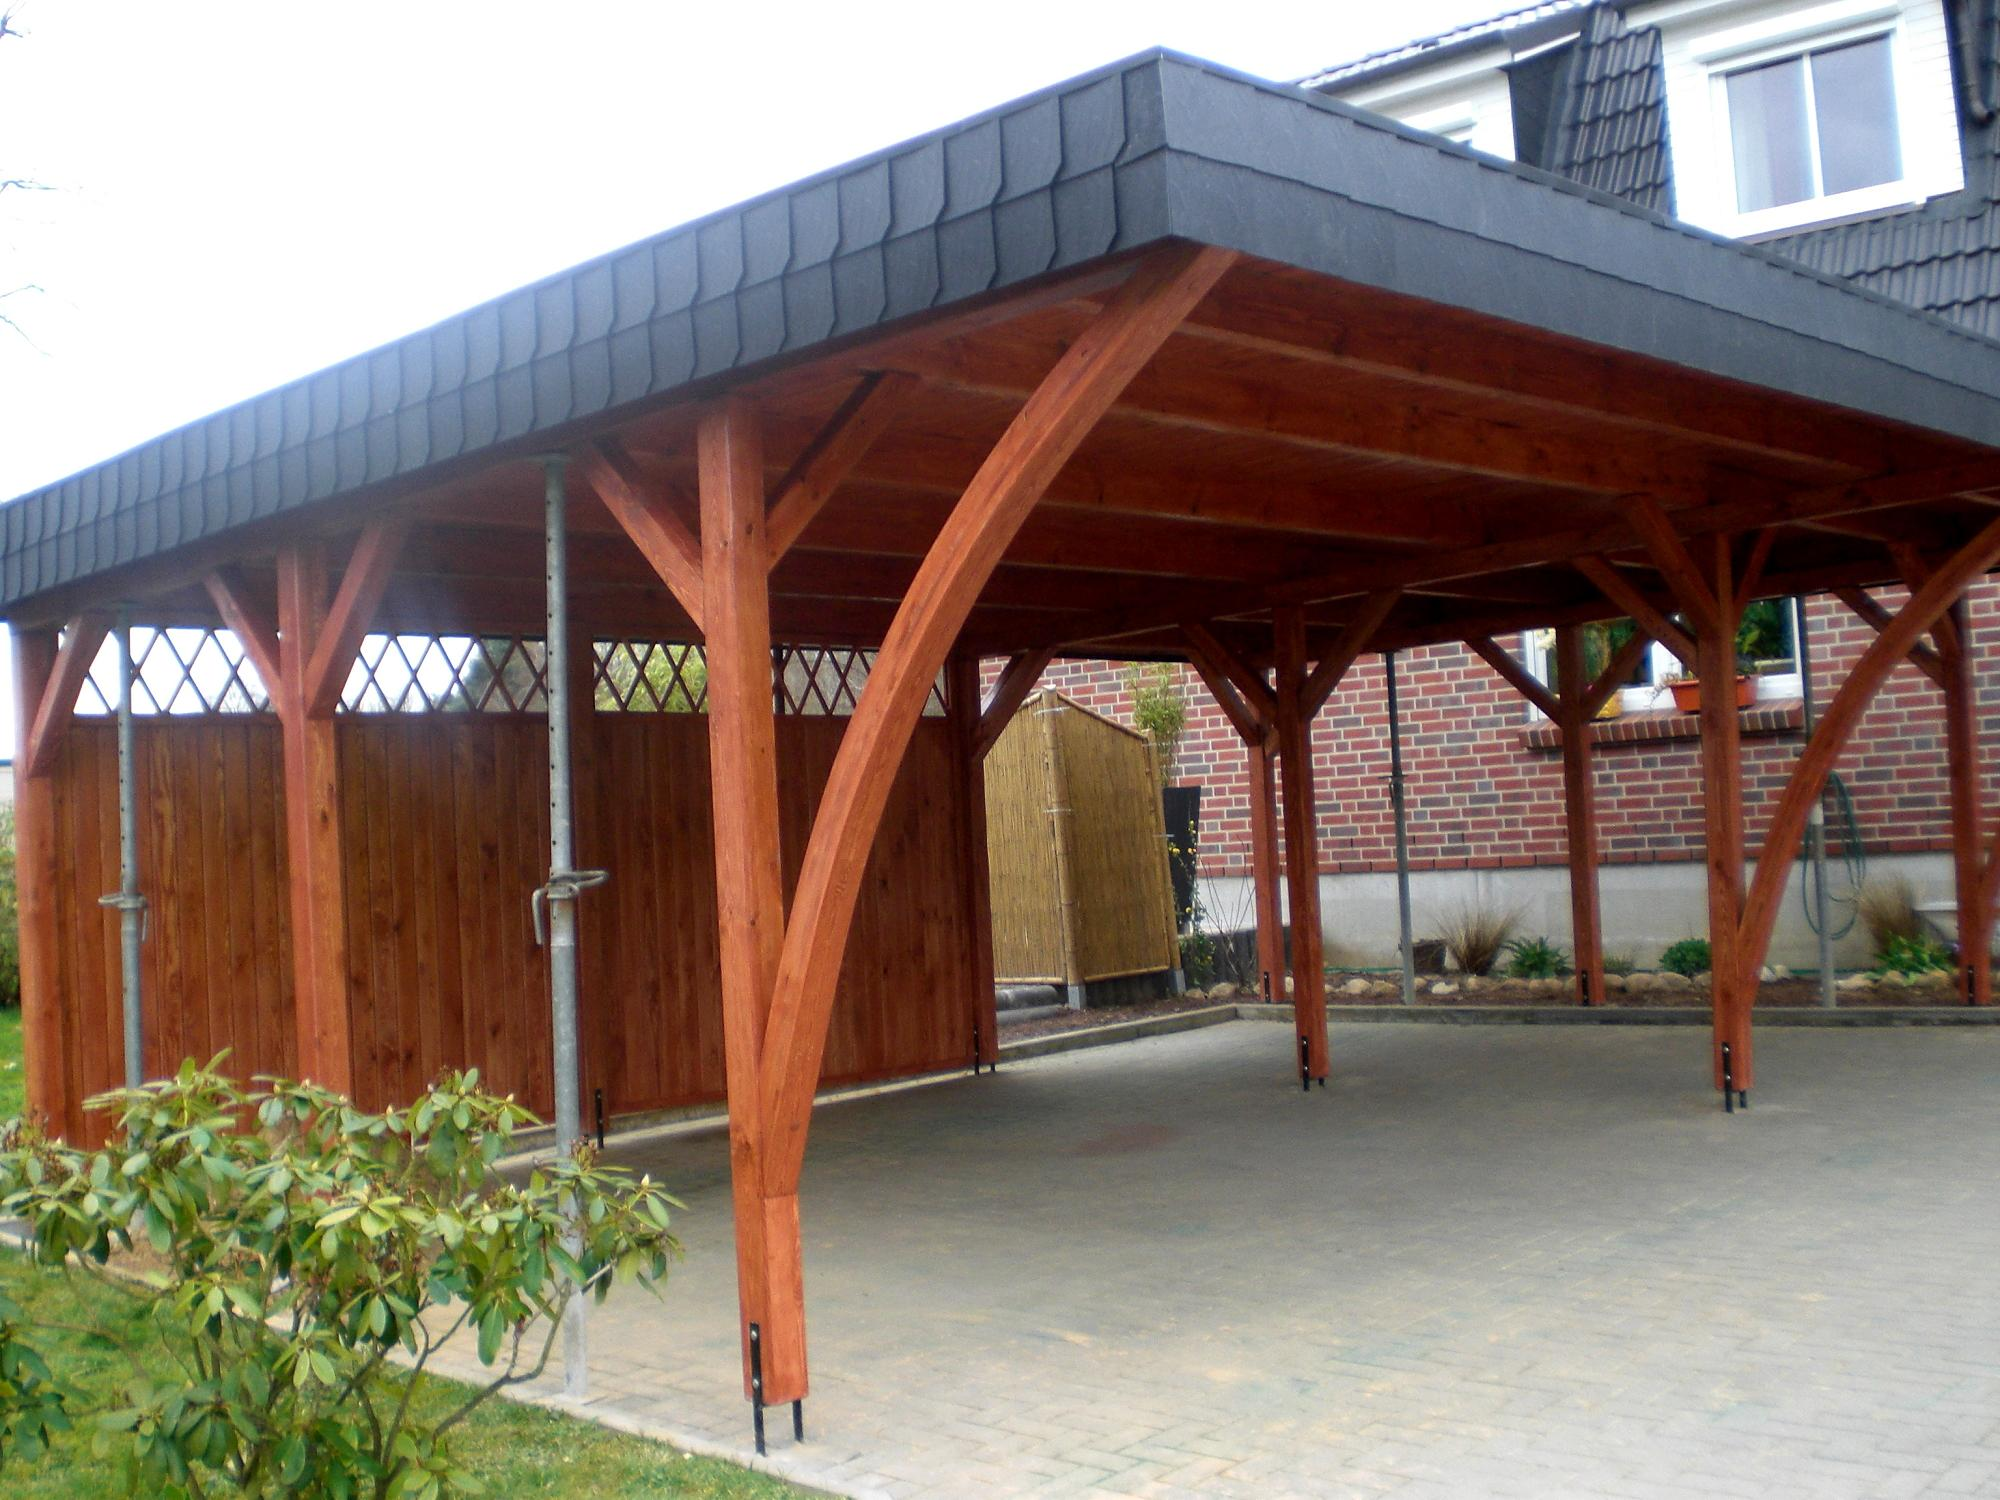 carport in hamburg mit schwarzen schindeln schindeln dachziegel fassadenplatten aus kunststoff. Black Bedroom Furniture Sets. Home Design Ideas